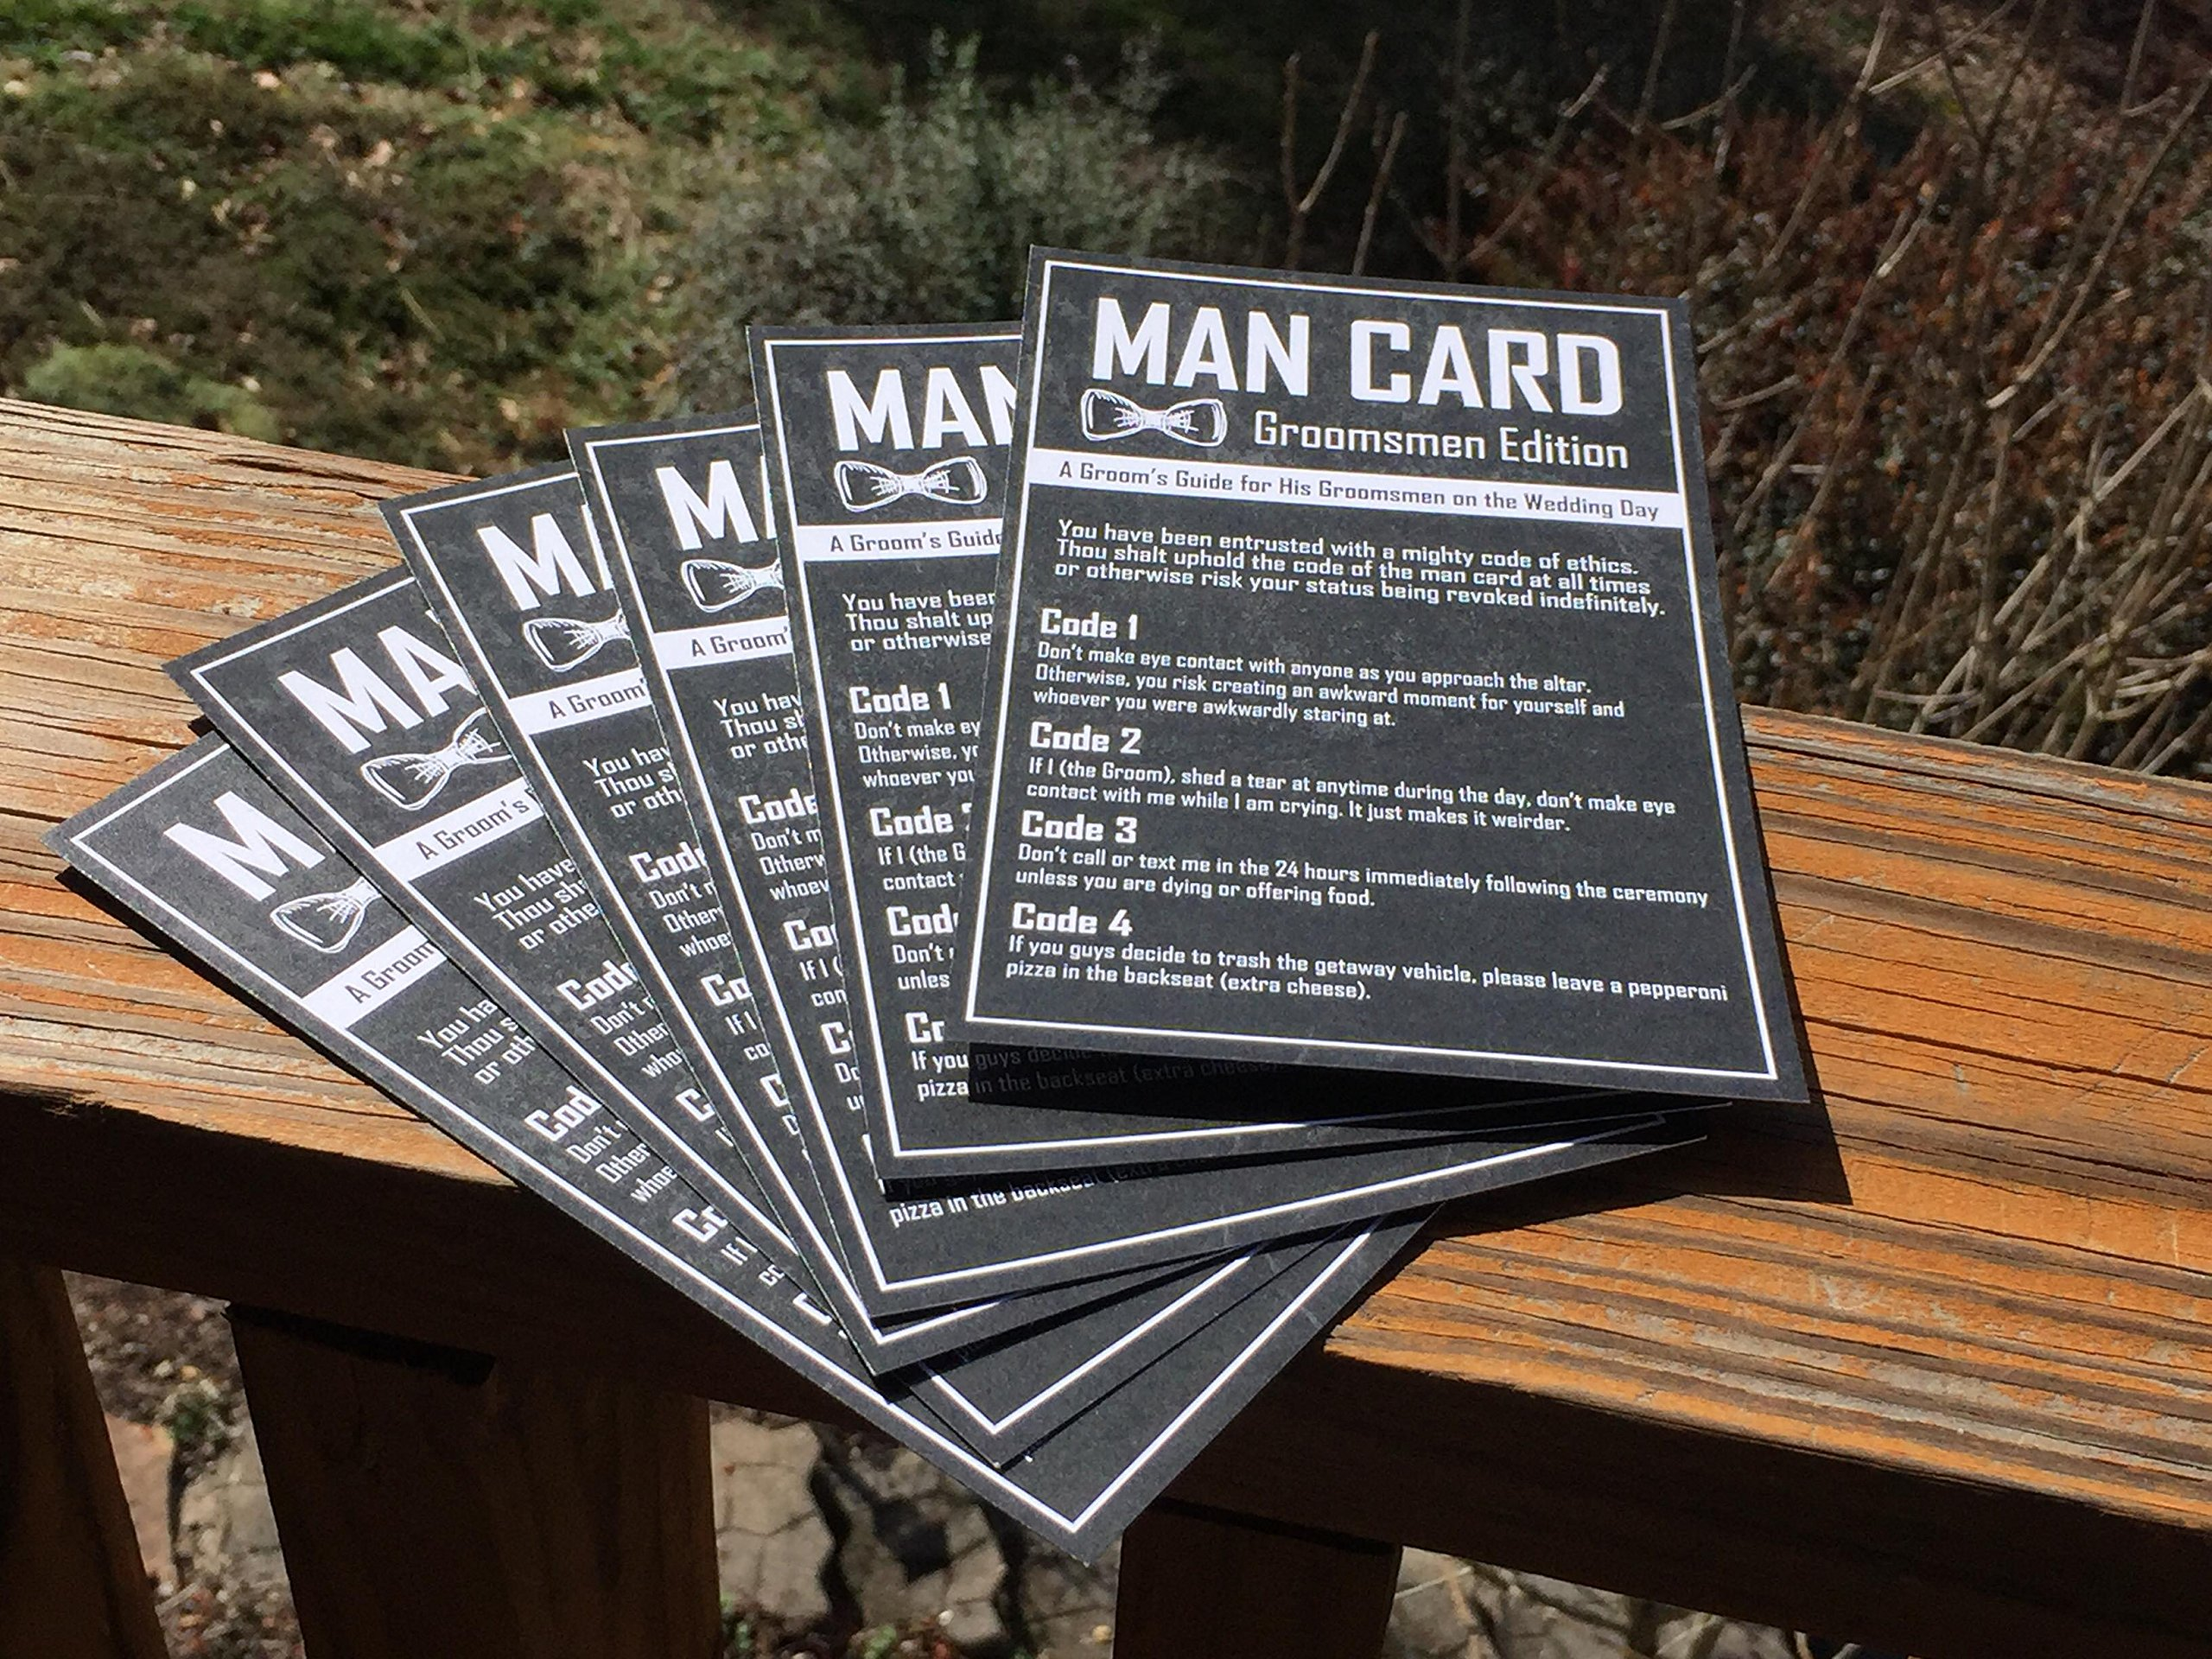 Groomsmen Gifts For Wedding - The Man Card - Groomsmen Edition 6-Pack by Wannabe Genius (Image #4)